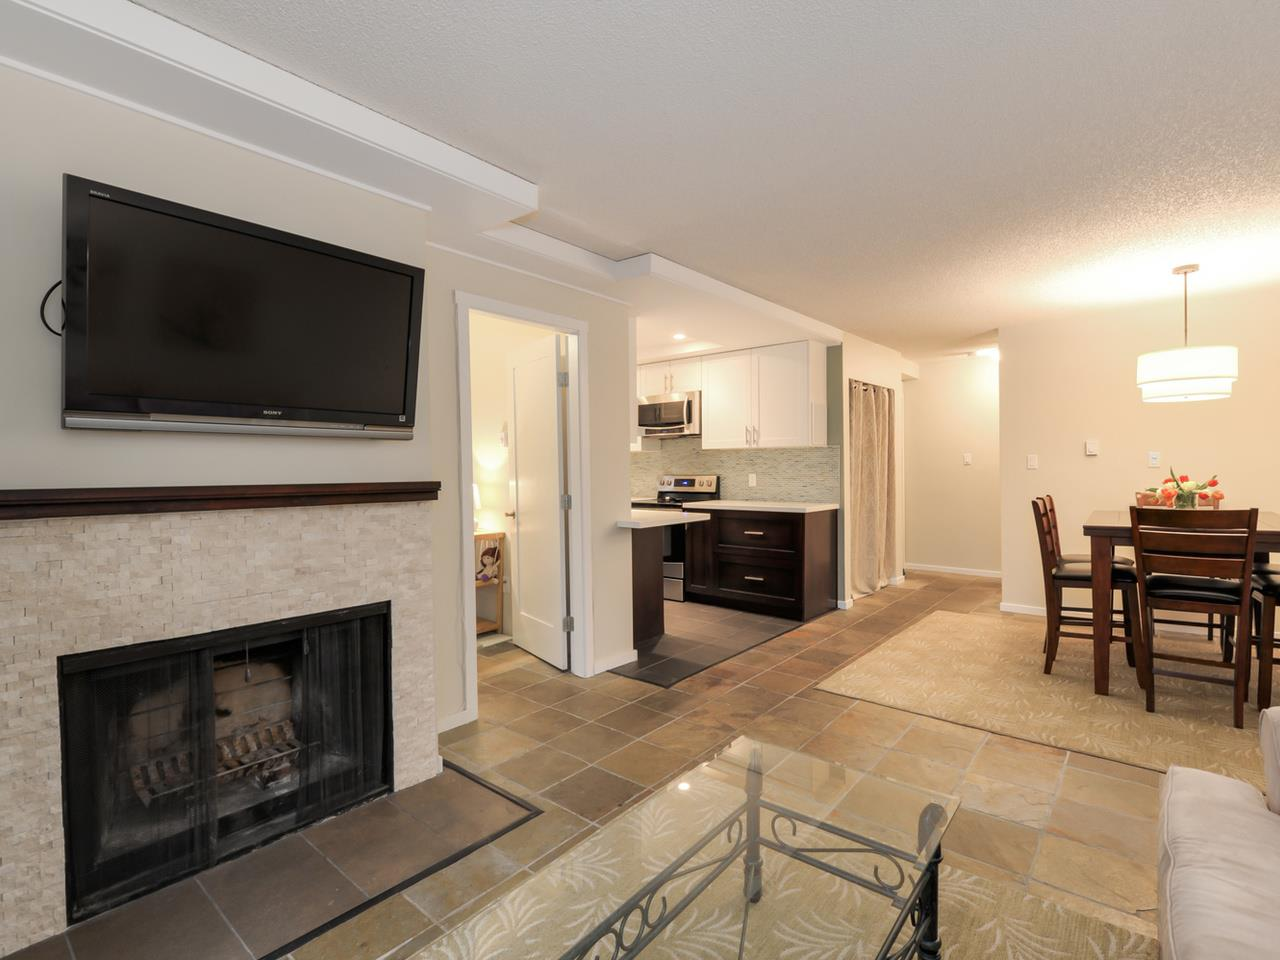 "Main Photo: 202 1352 W 10TH Avenue in Vancouver: Fairview VW Condo for sale in ""Tell Manor"" (Vancouver West)  : MLS® # R2035626"